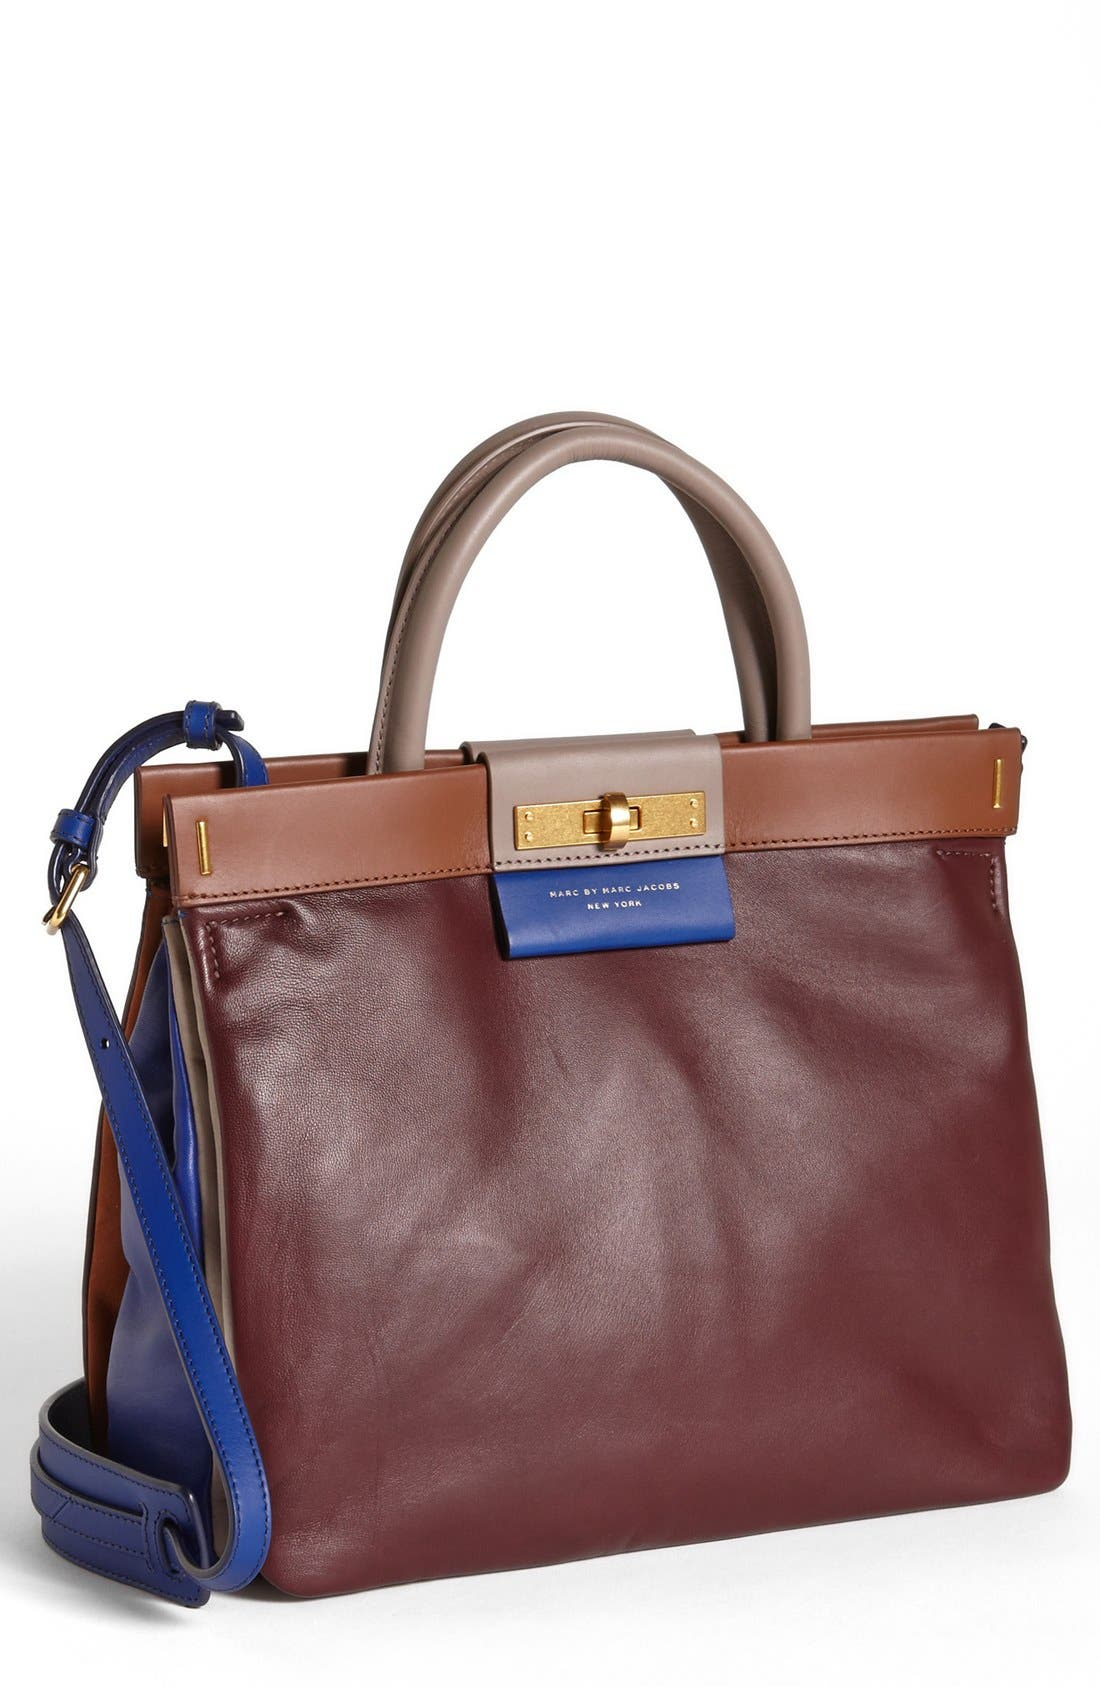 Alternate Image 1 Selected - MARC BY MARC JACOBS 'East End - Madame Hilli' Colorblocked Satchel